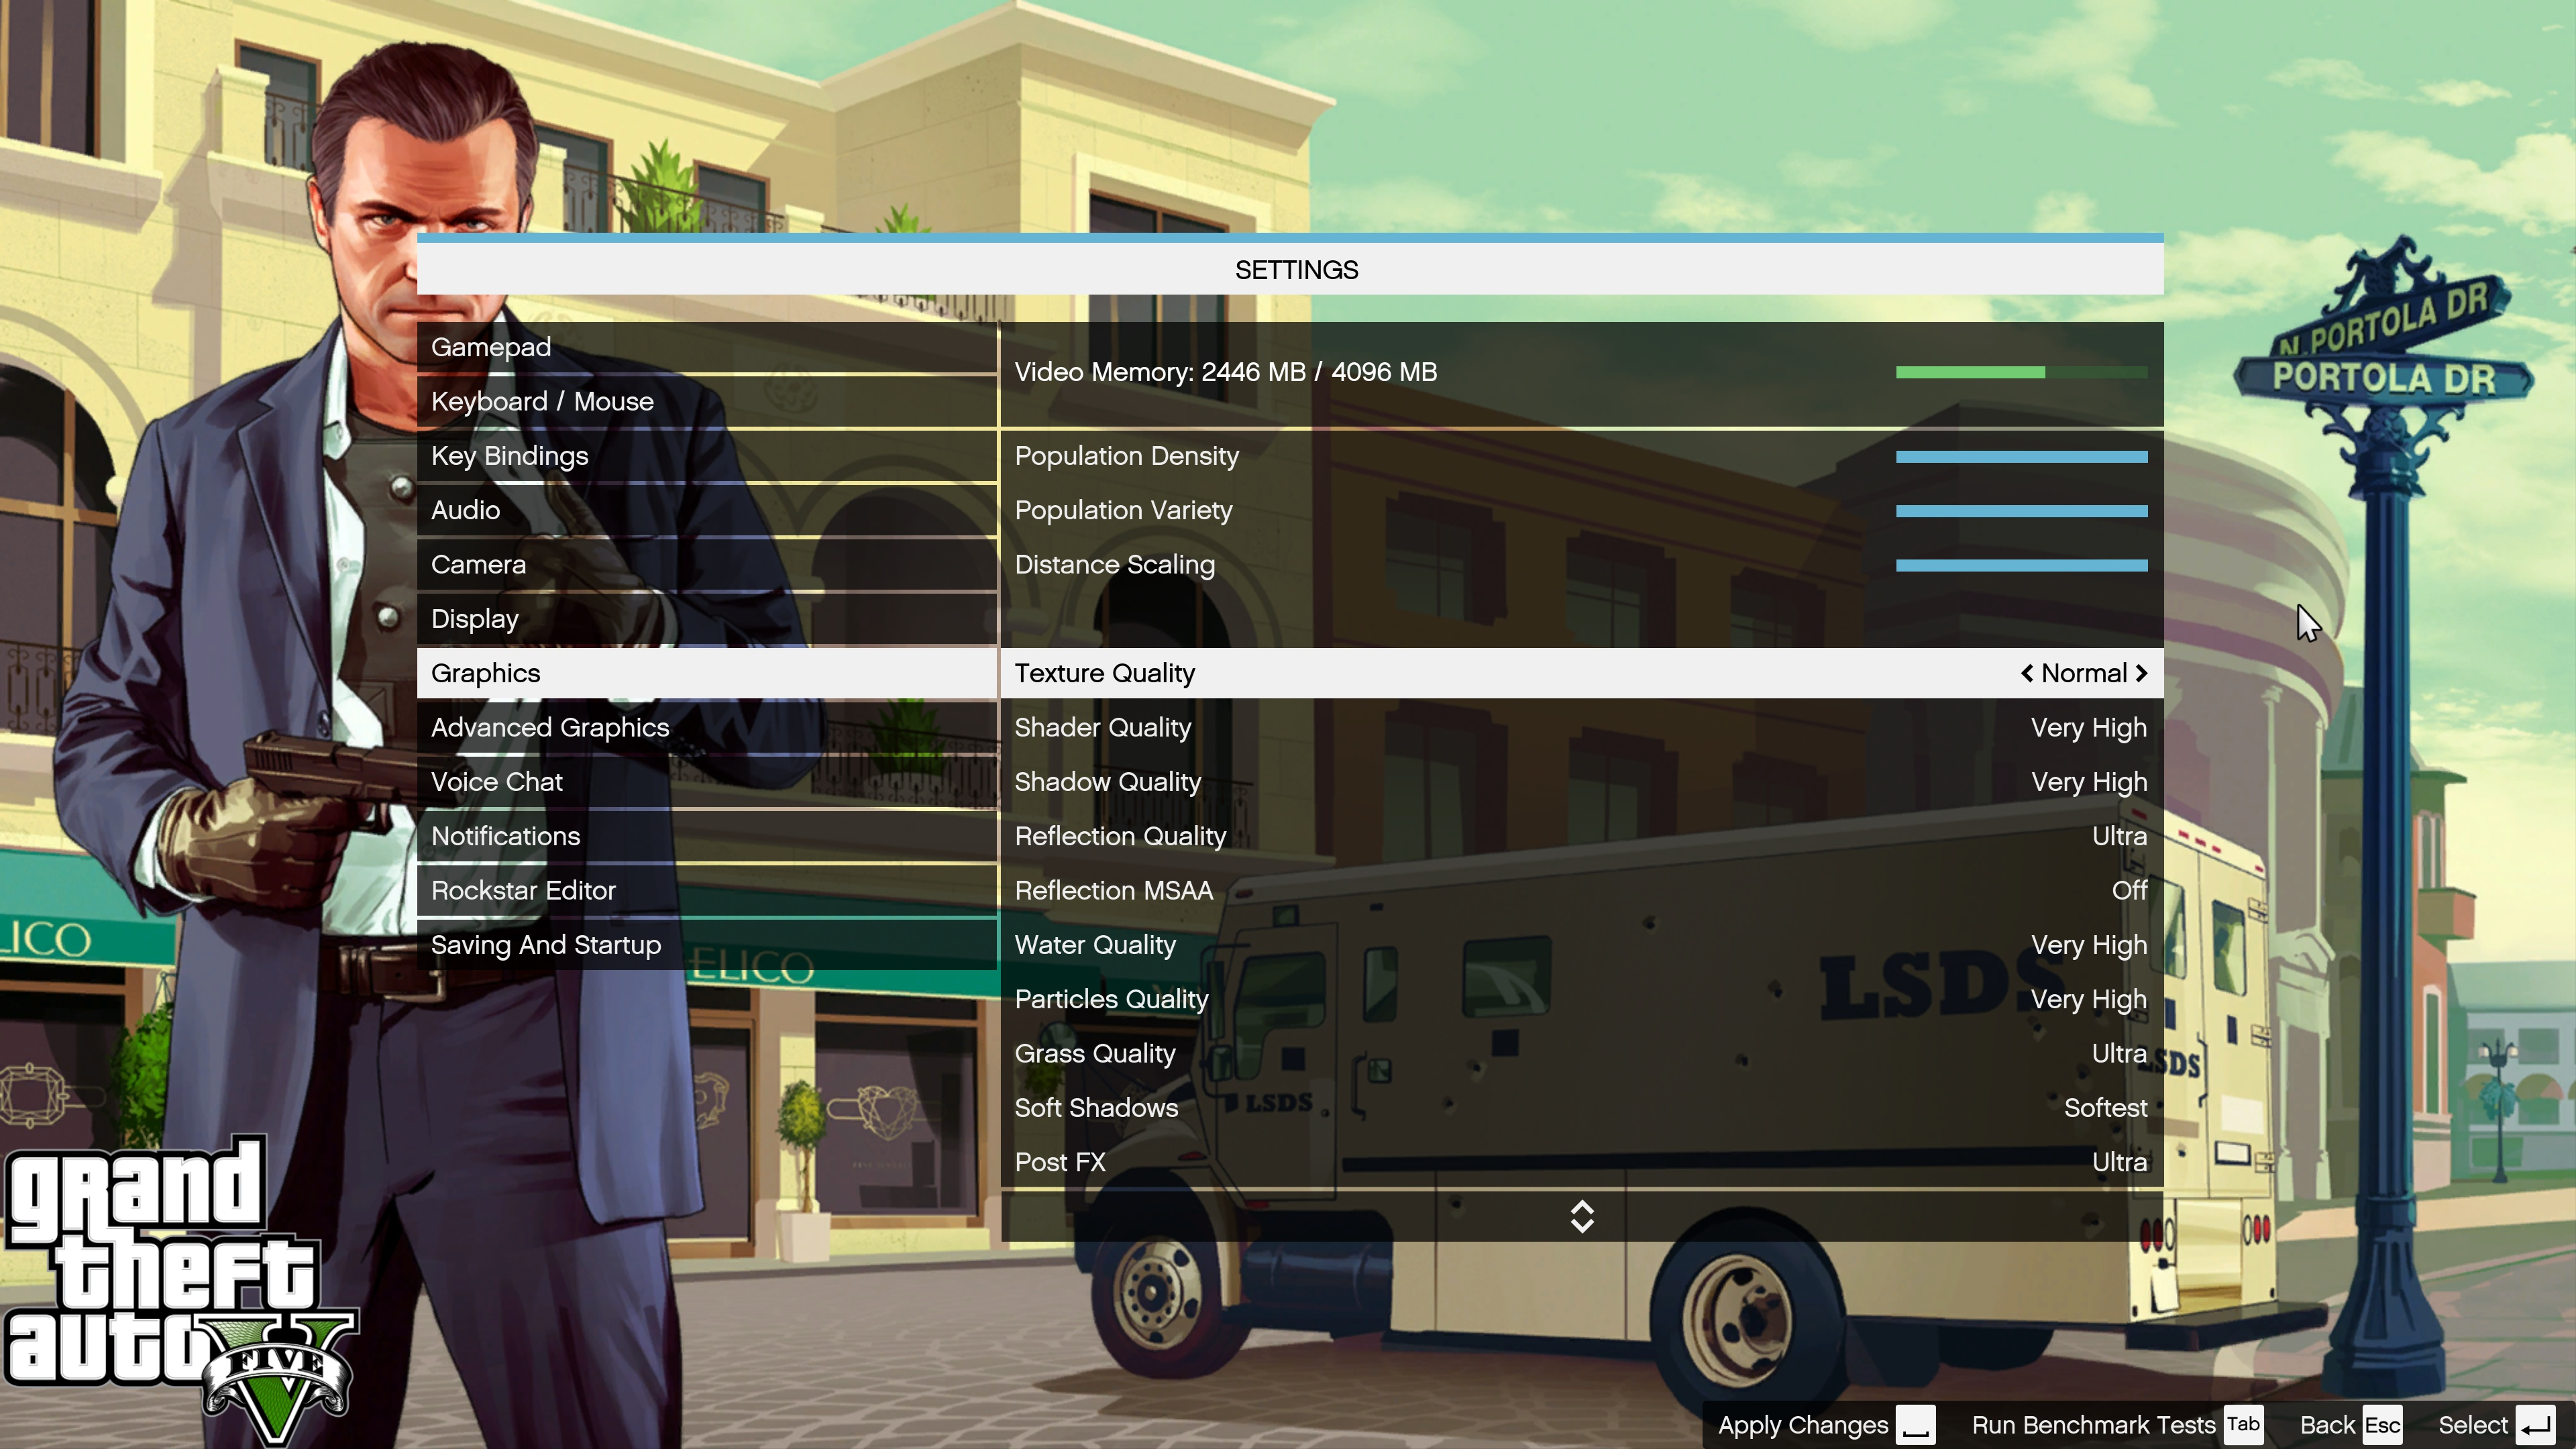 Grand Theft Auto V Benchmarked: Graphics & CPU Performance